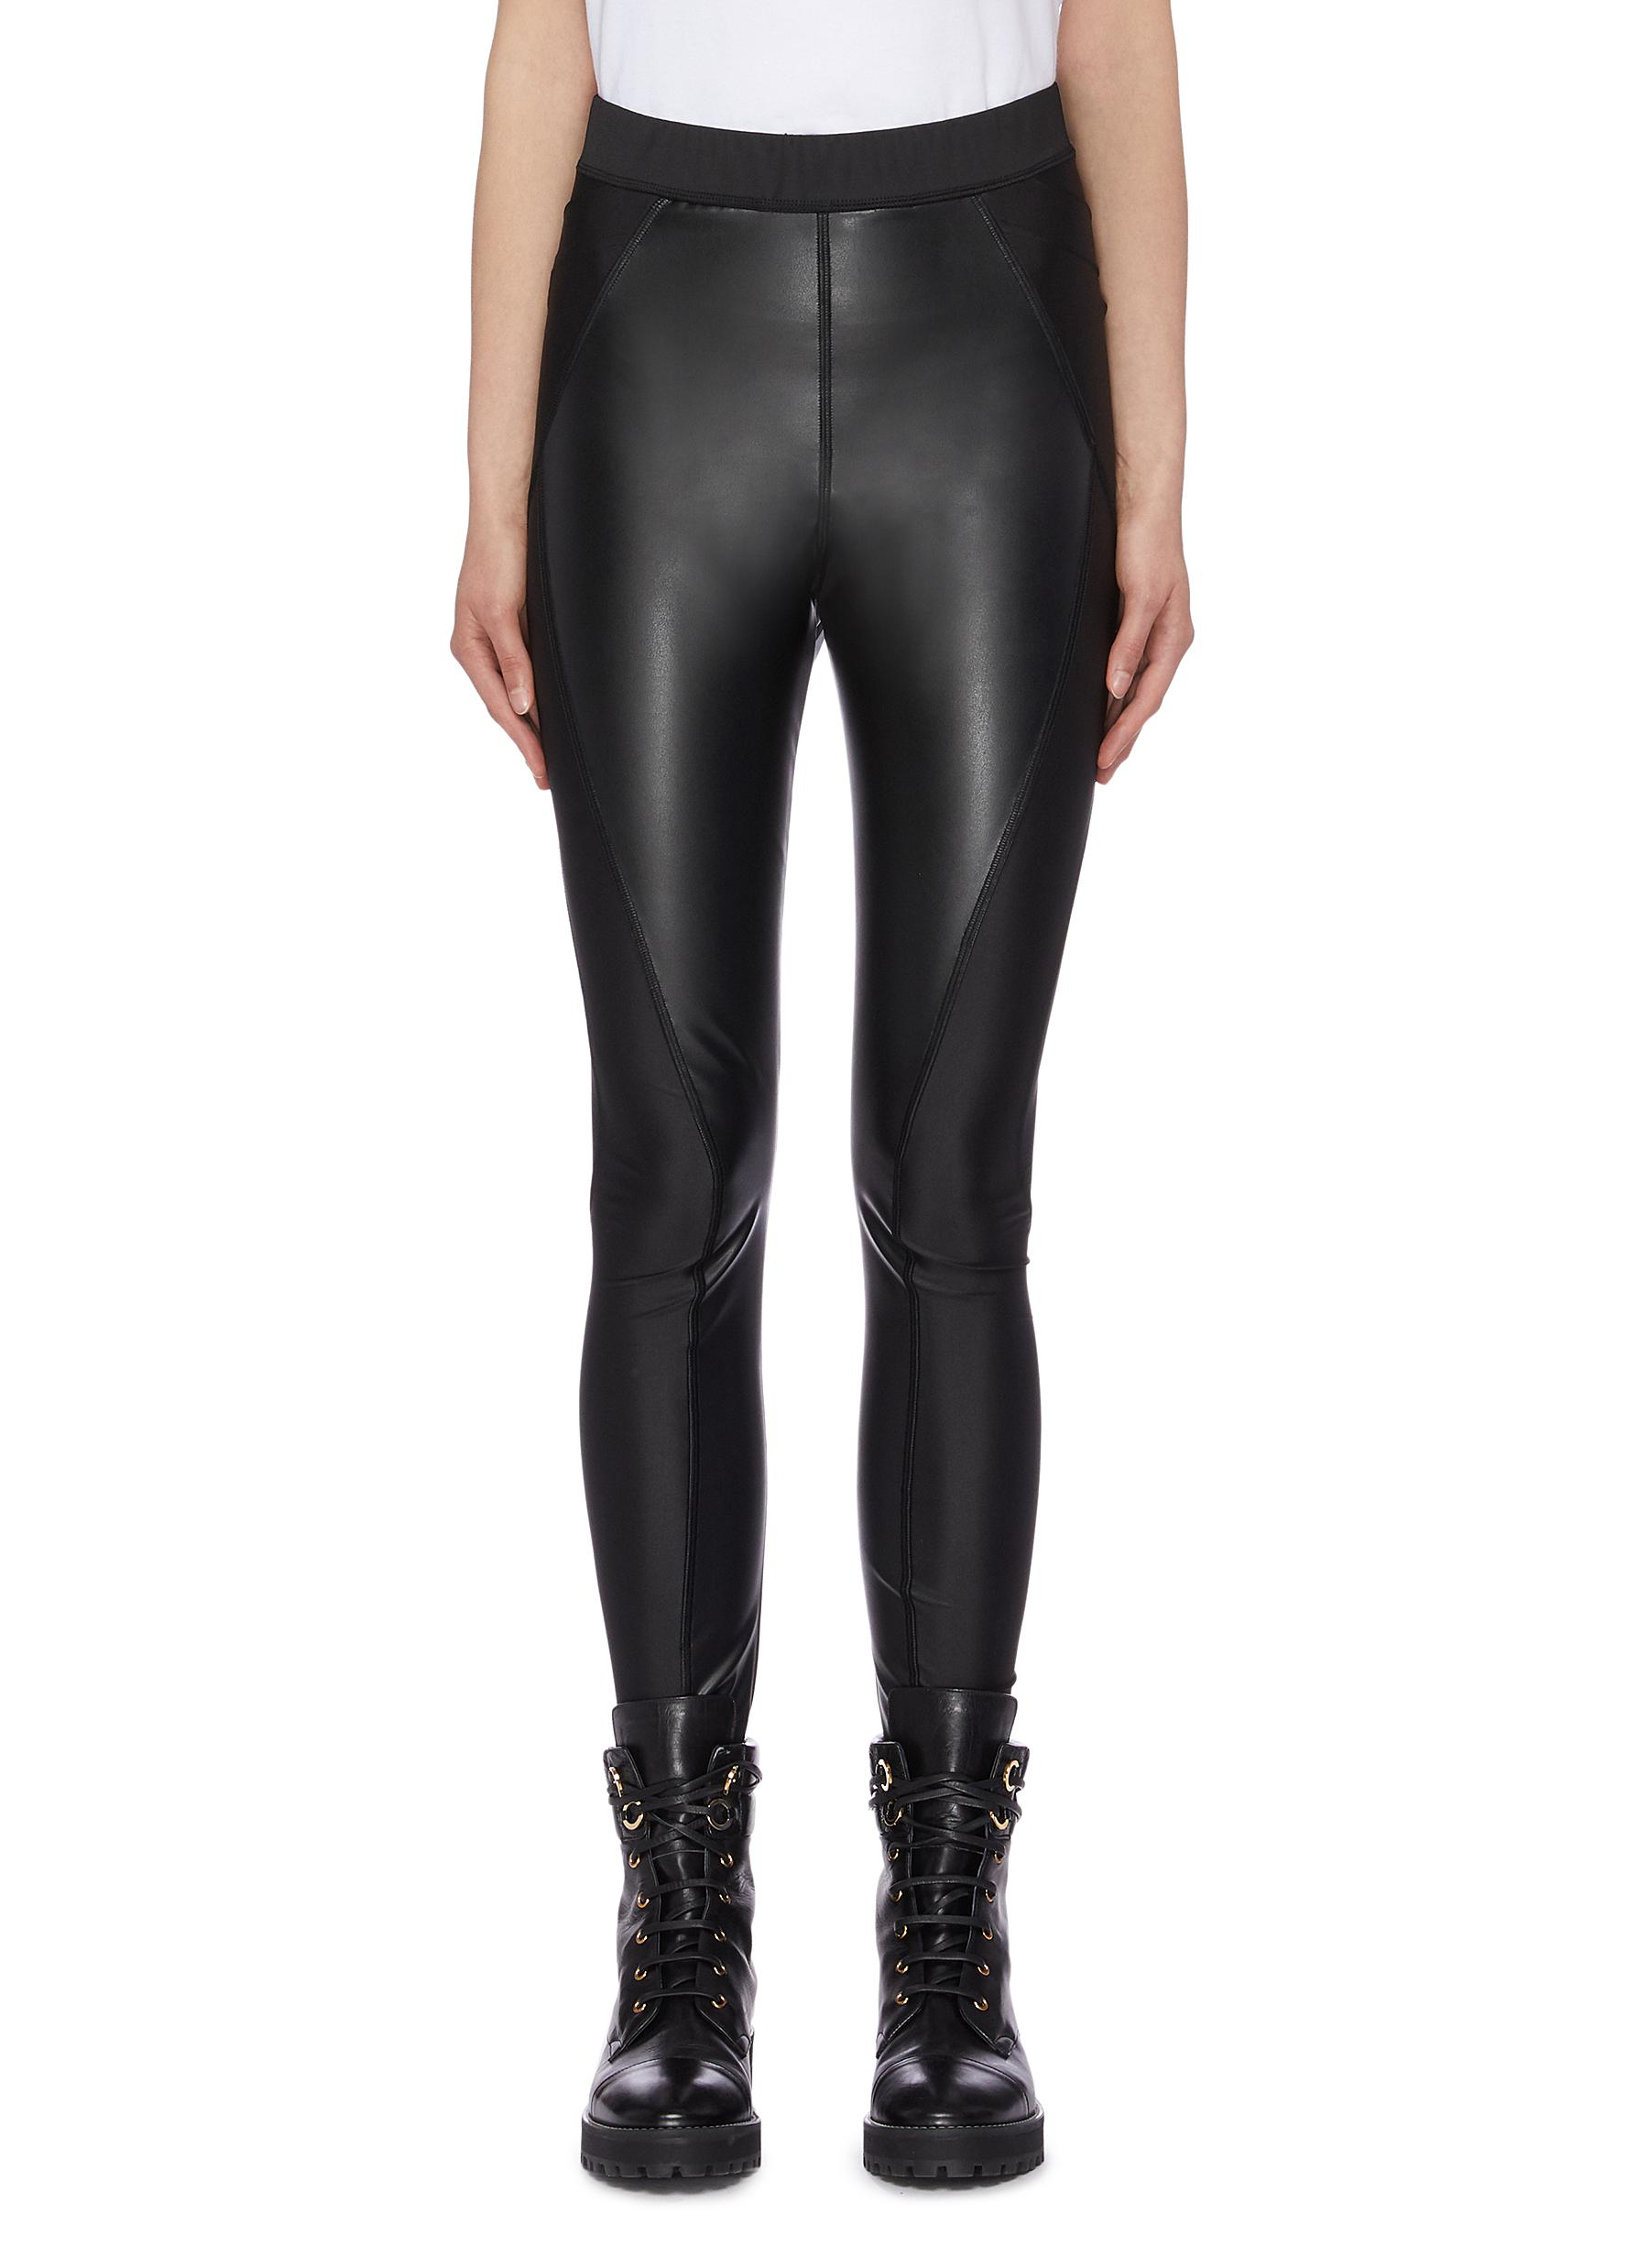 Panelled faux leather leggings by Sacai